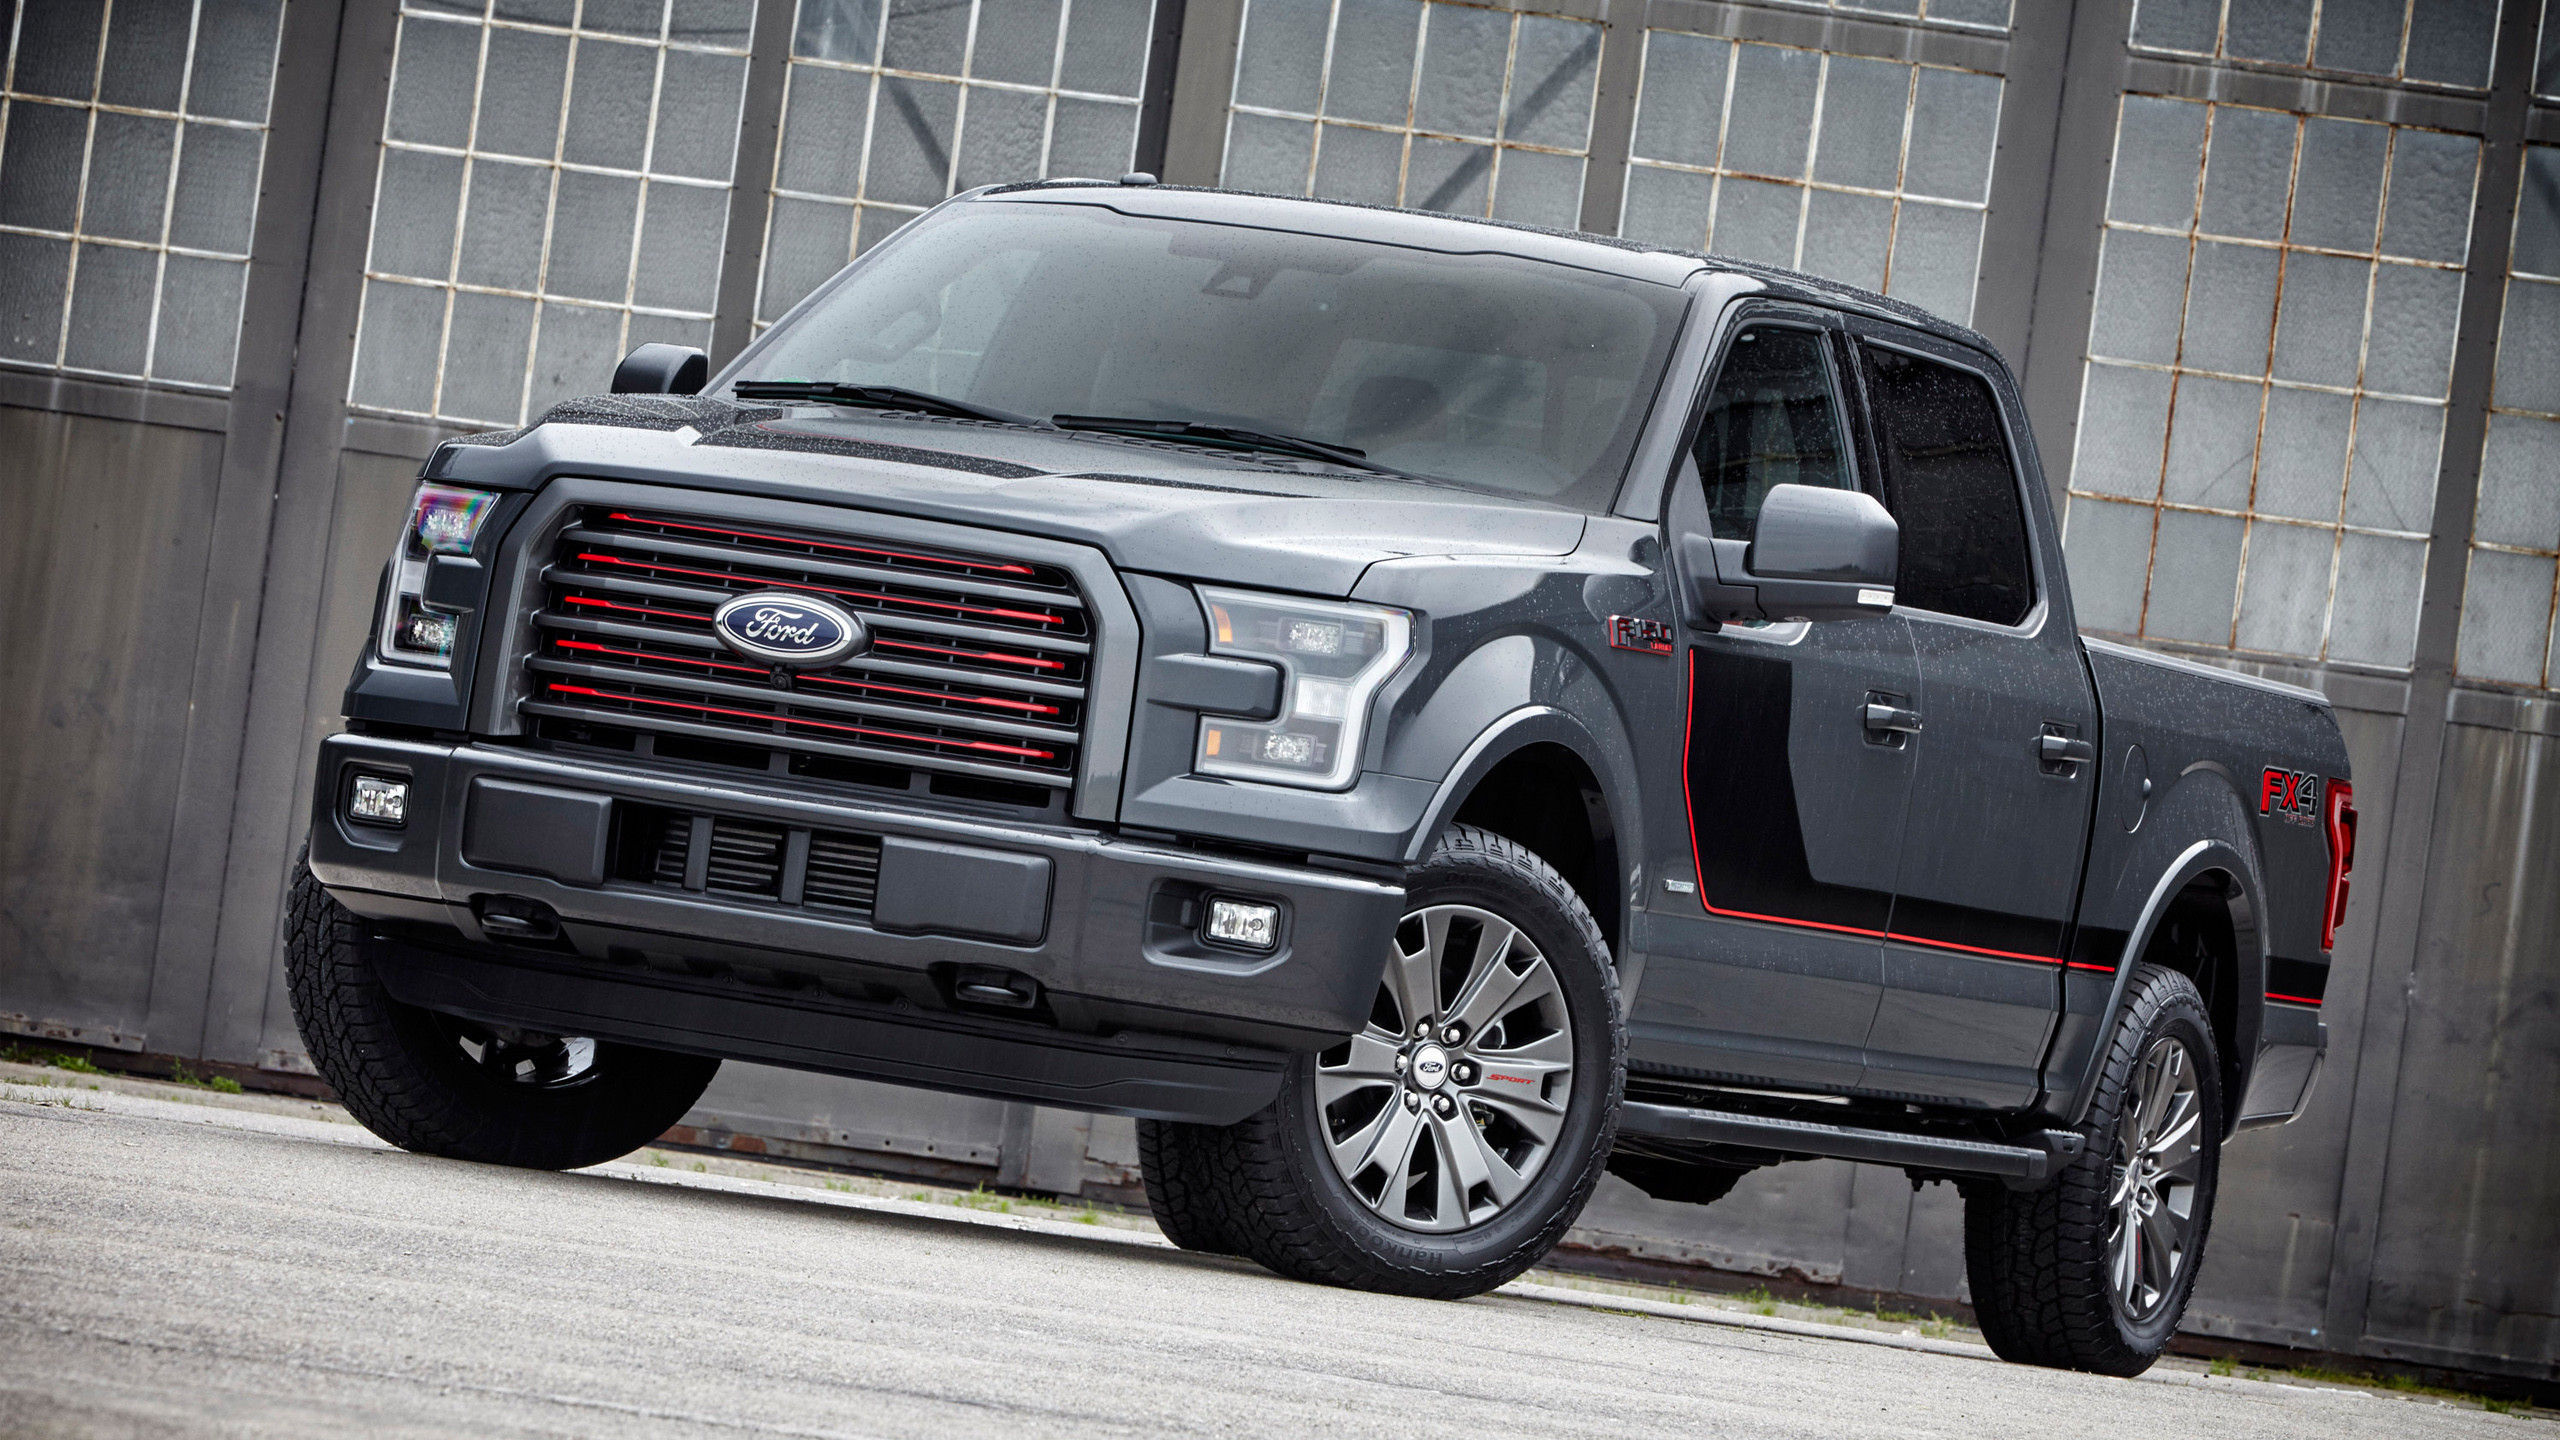 Wallpapers Of The Day: Ford Truck px Ford Truck Wallpapers 1280×1024 F150  Wallpapers